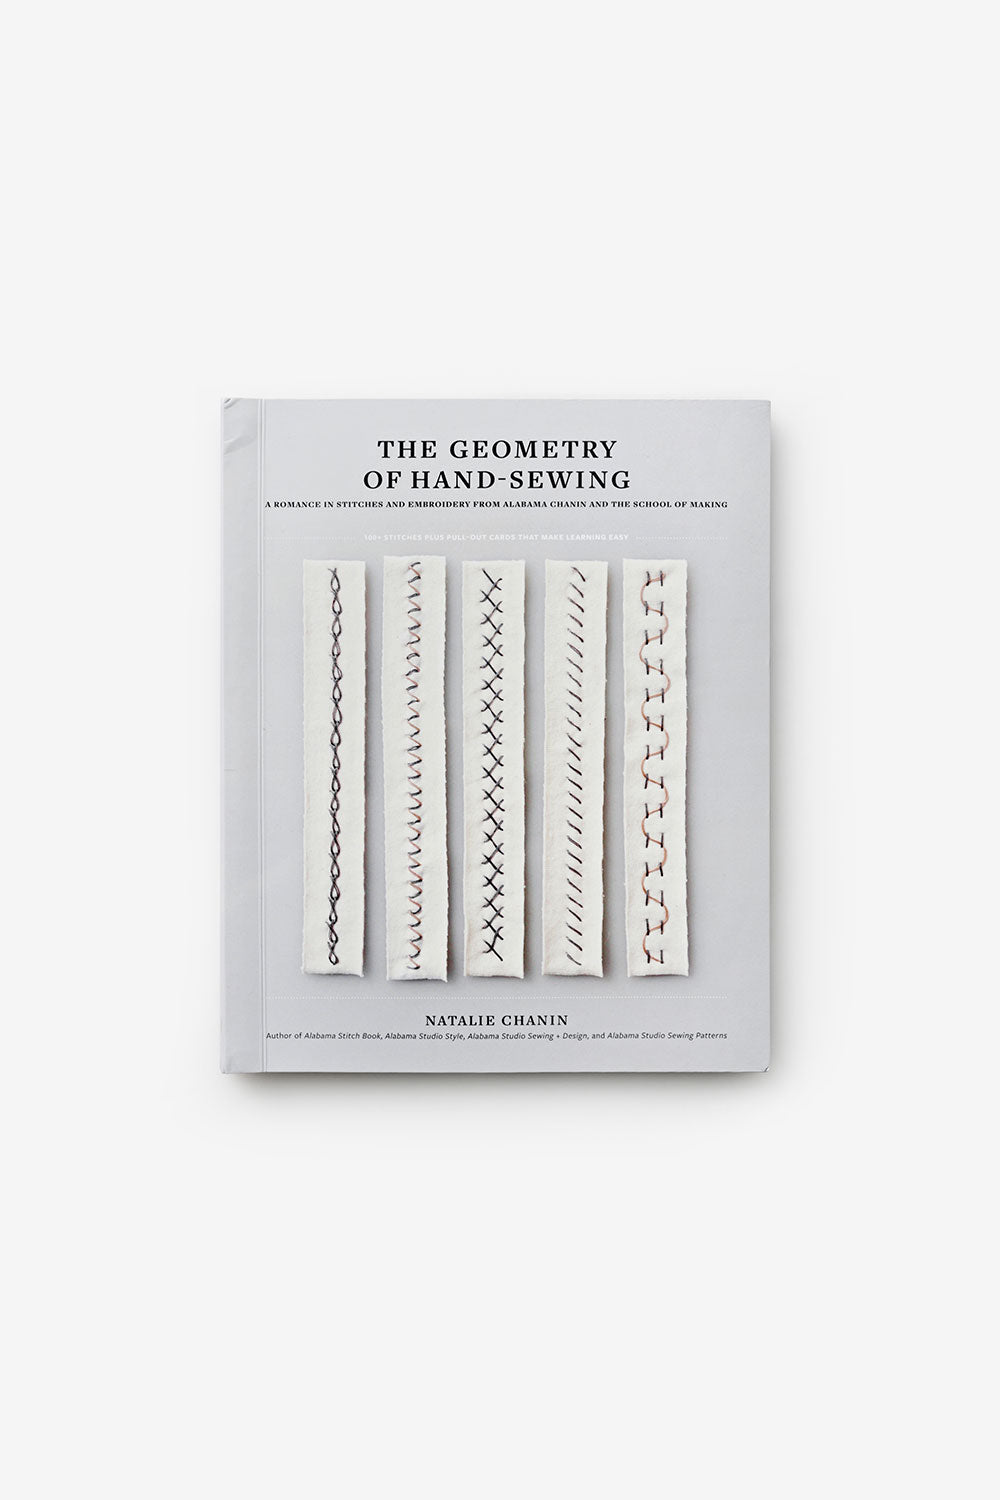 The School of Making Embroidery Sampler The Geometry of Hand-Sewing Book by Natalie Chanin Sewing Instruction